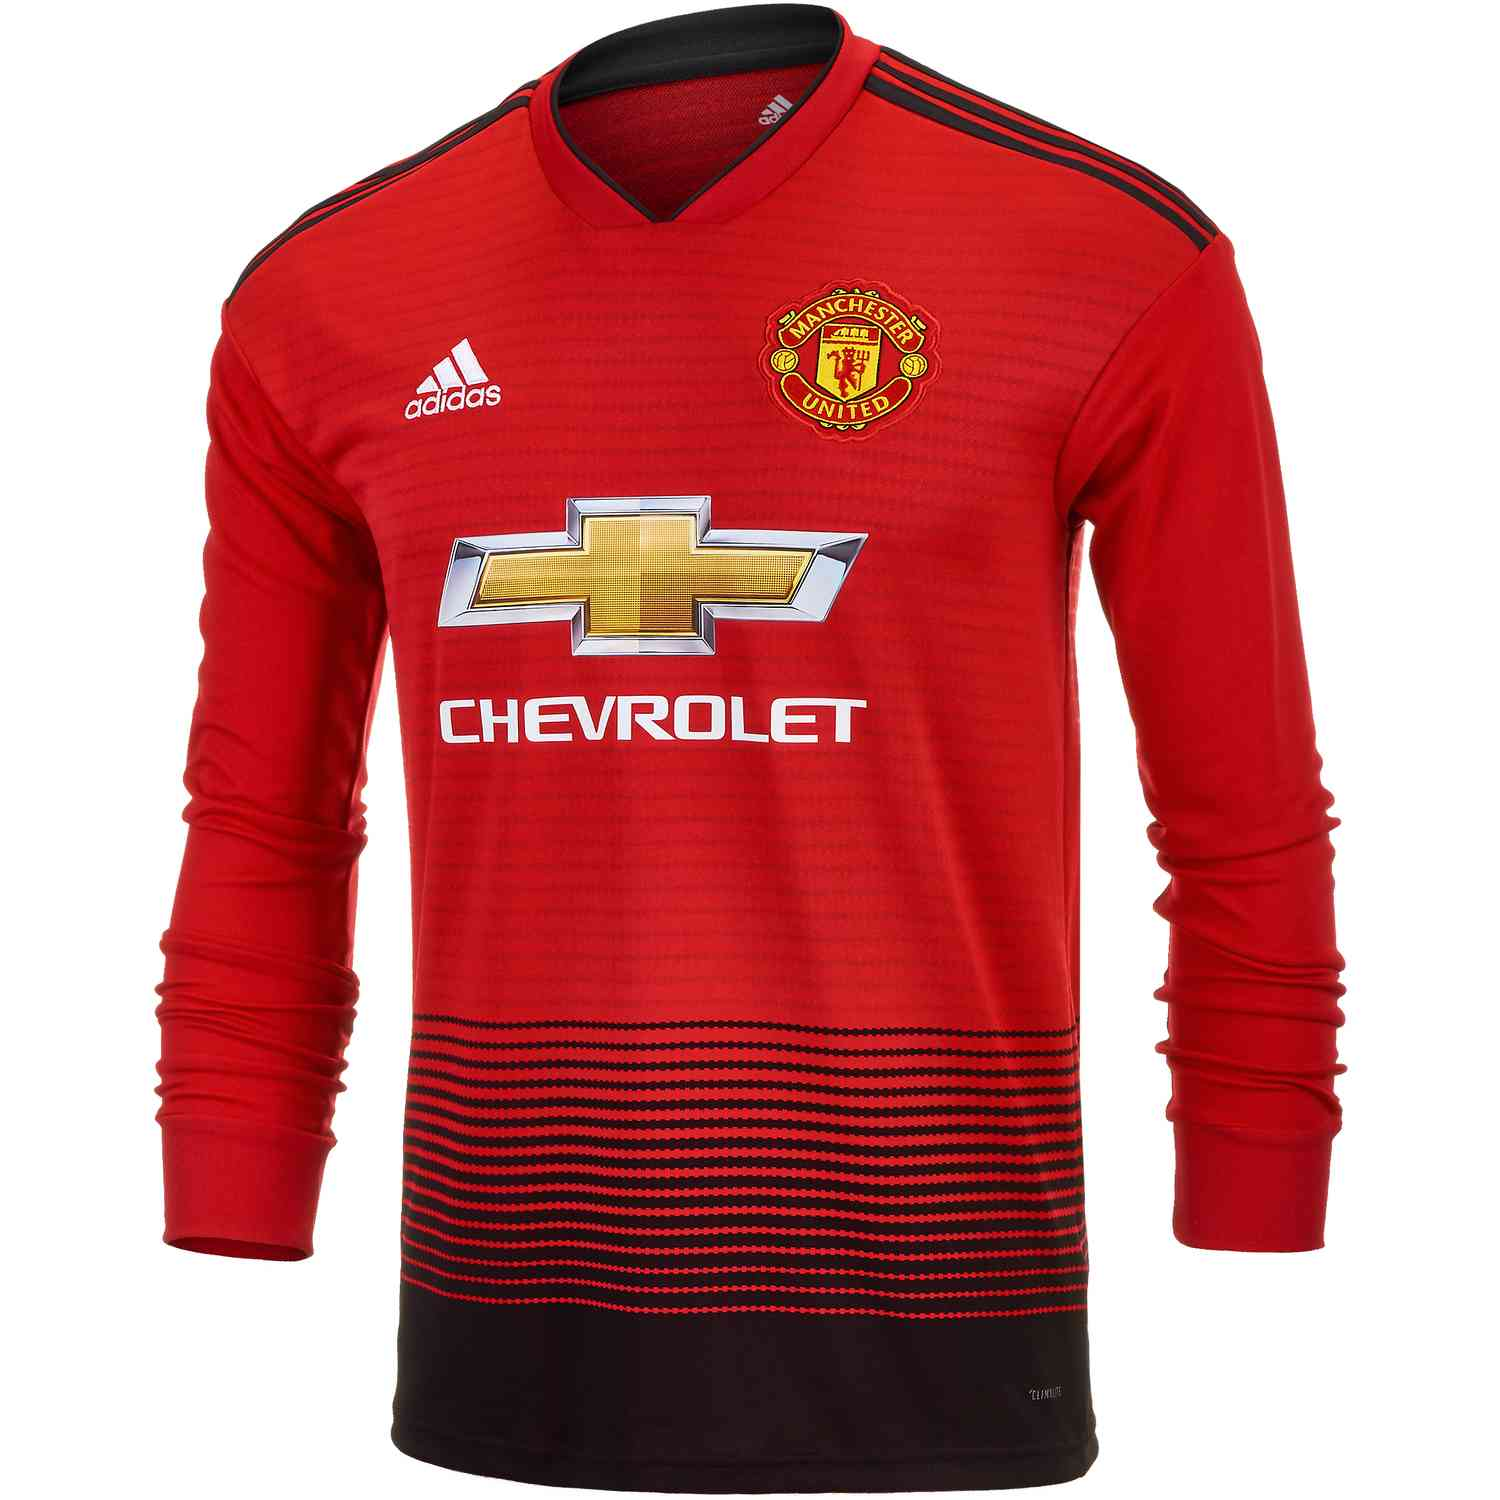 timeless design 5fea7 d610e adidas Manchester United Home L/S Jersey 2018-19 - Soccer ...